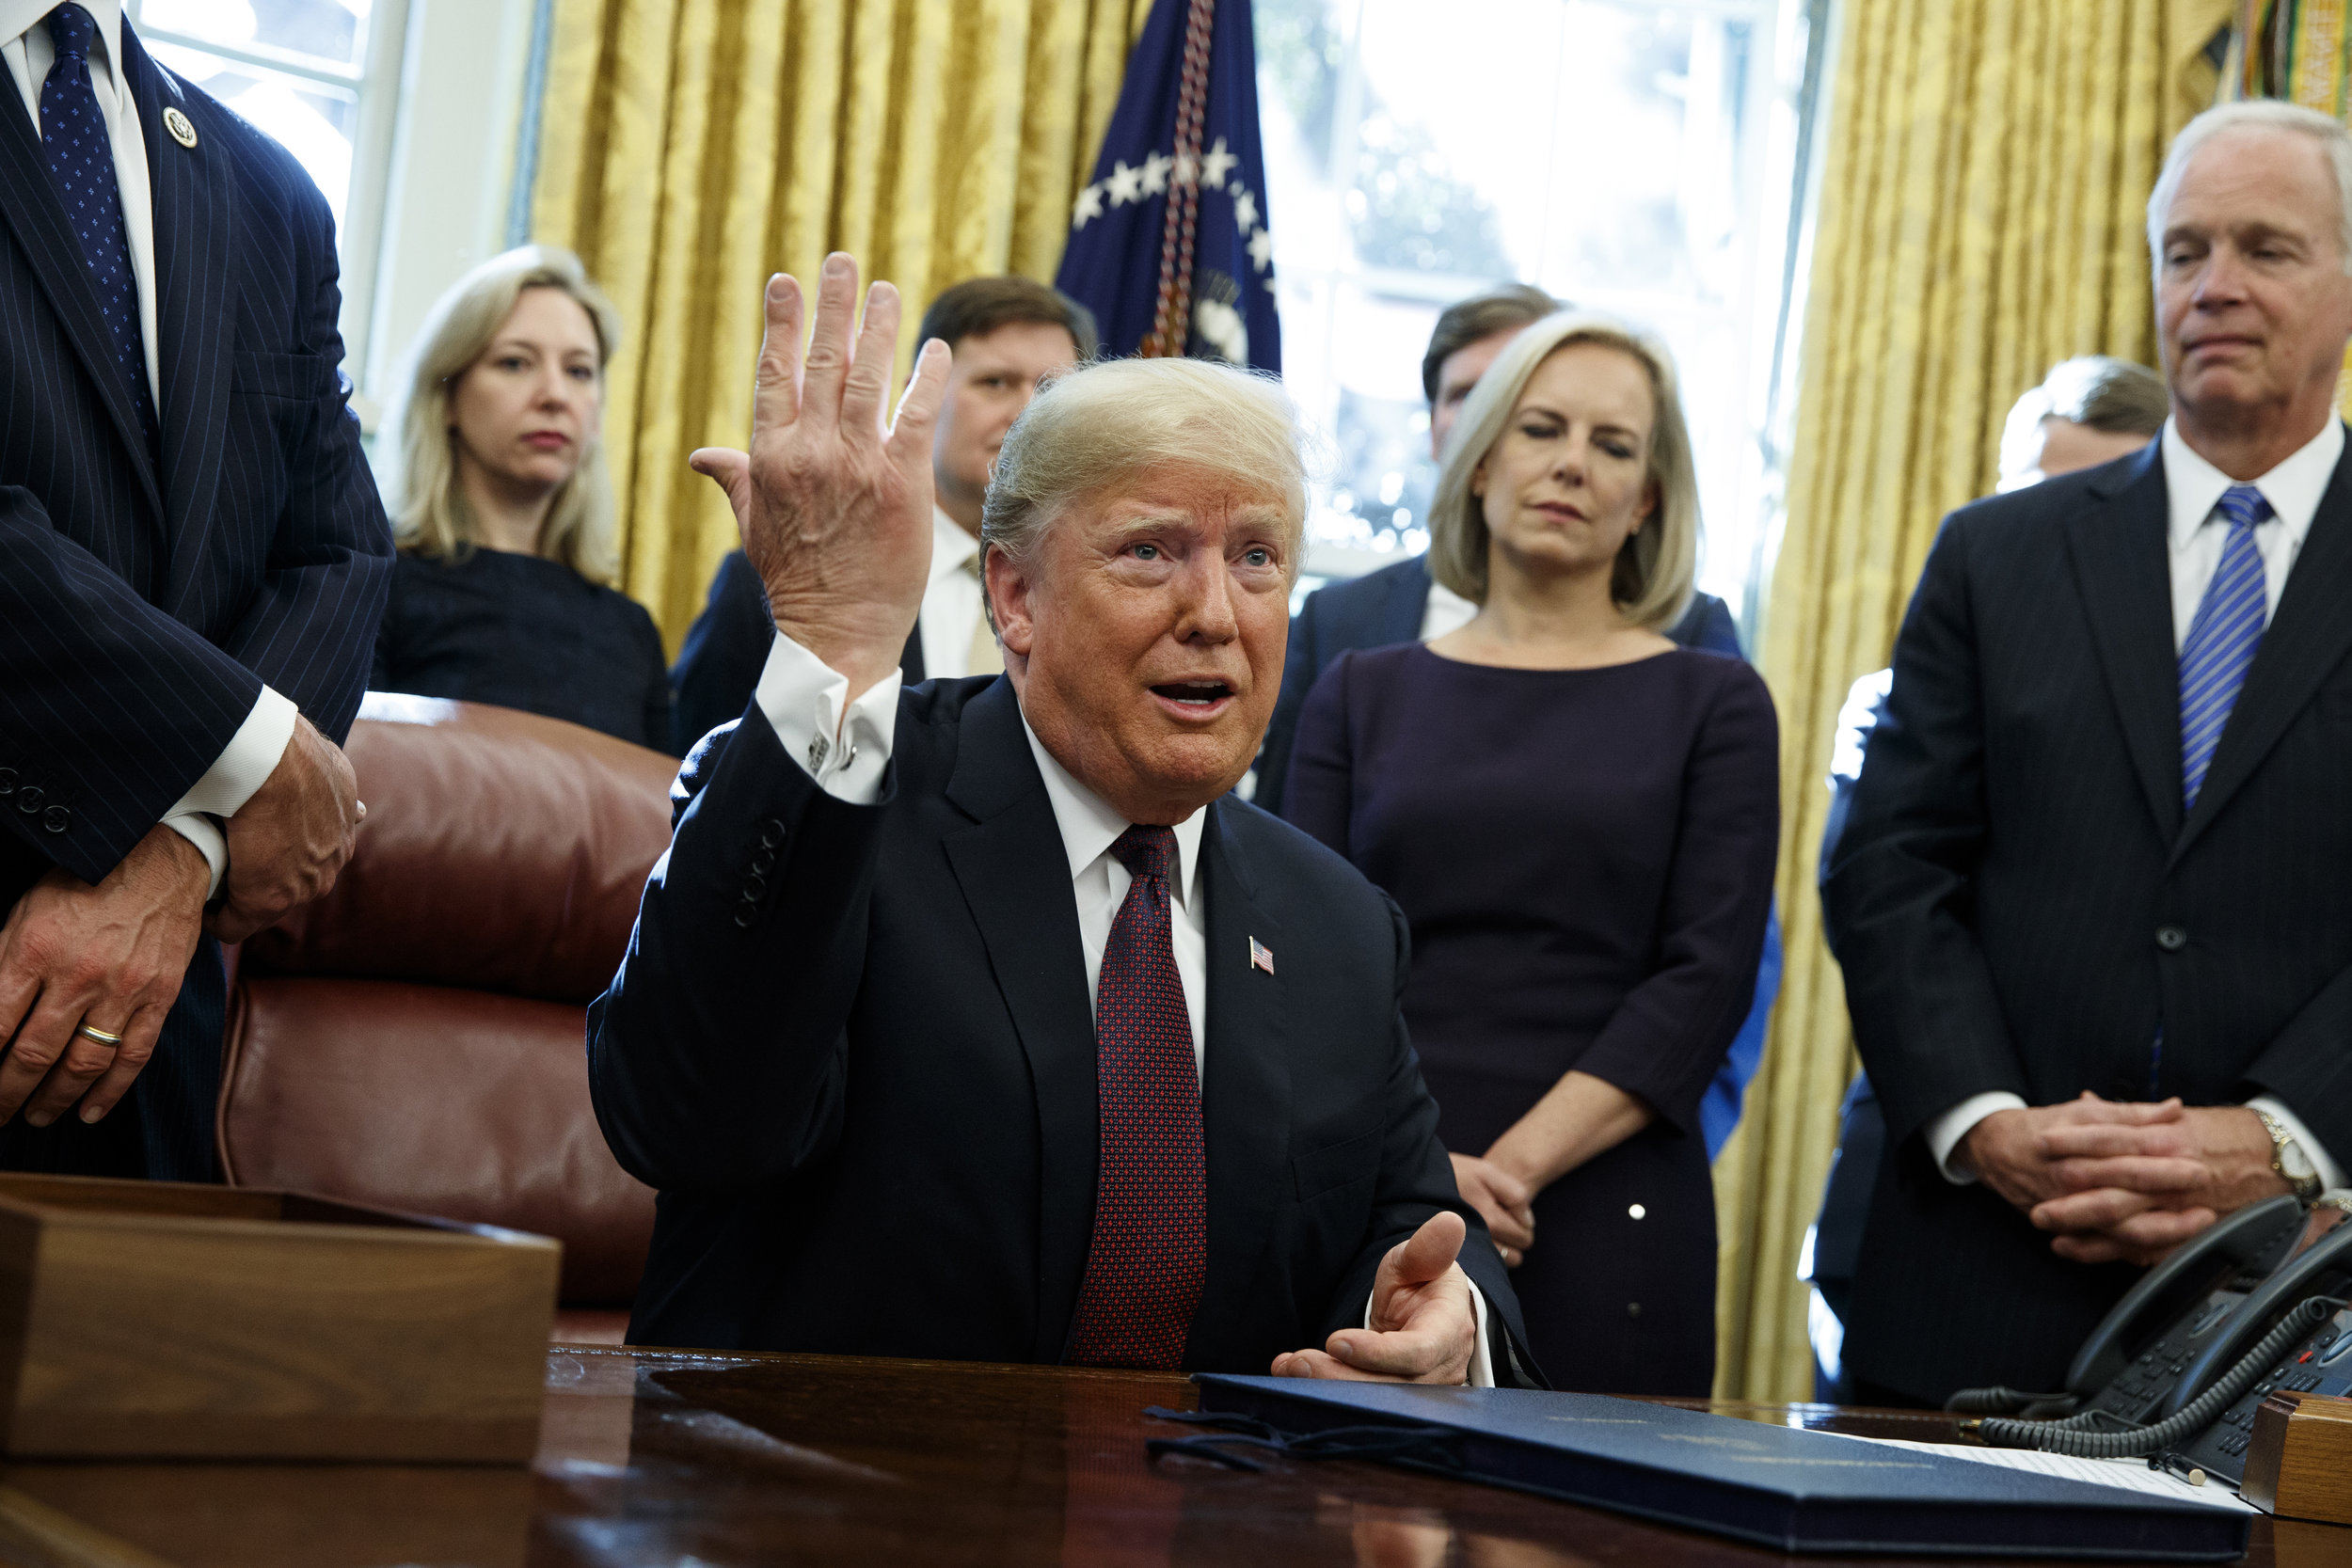 President Donald Trump answers a reporters question about the investigation of special counsel Robert Mueller in the Oval Office of the White House, Friday, Nov. 16, 2018, in Washington. (AP Photo/Evan Vucci)